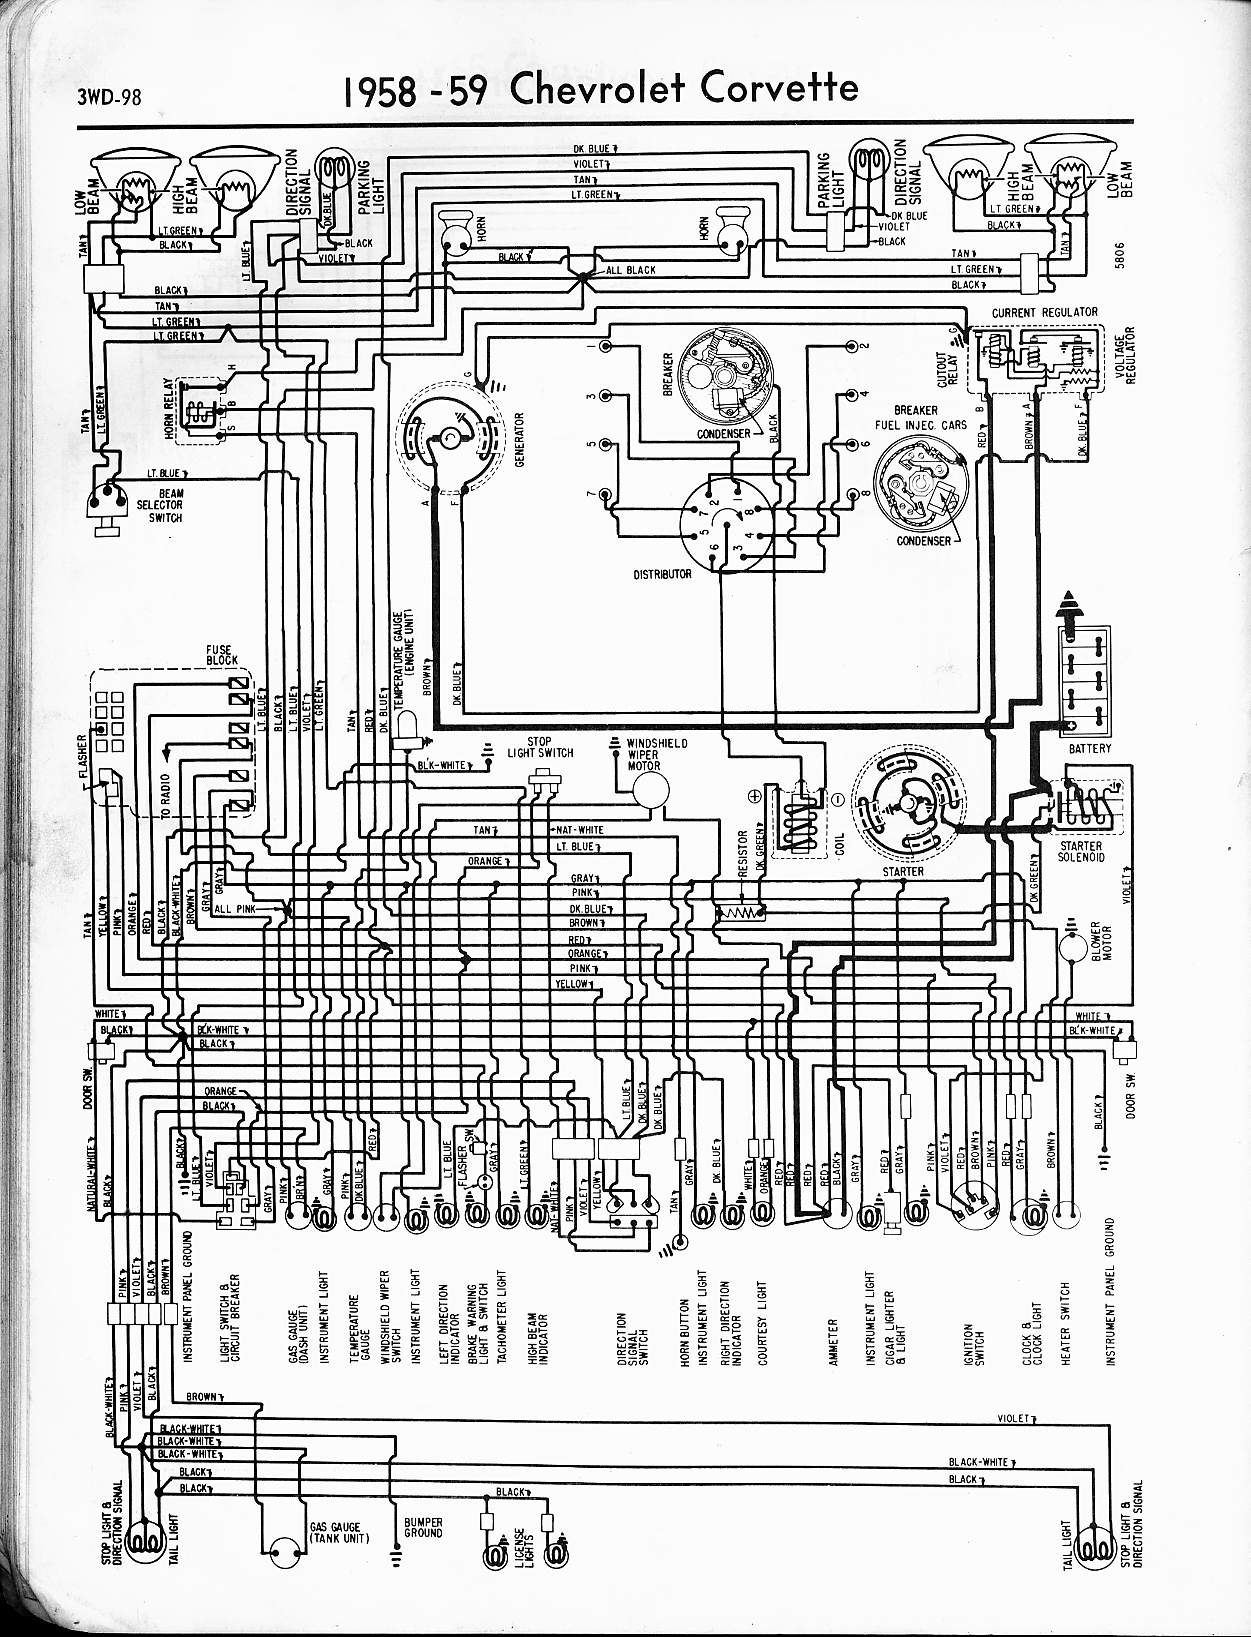 MWireChev58_3WD 098 57 65 chevy wiring diagrams 1965 chevy wiring diagram at soozxer.org